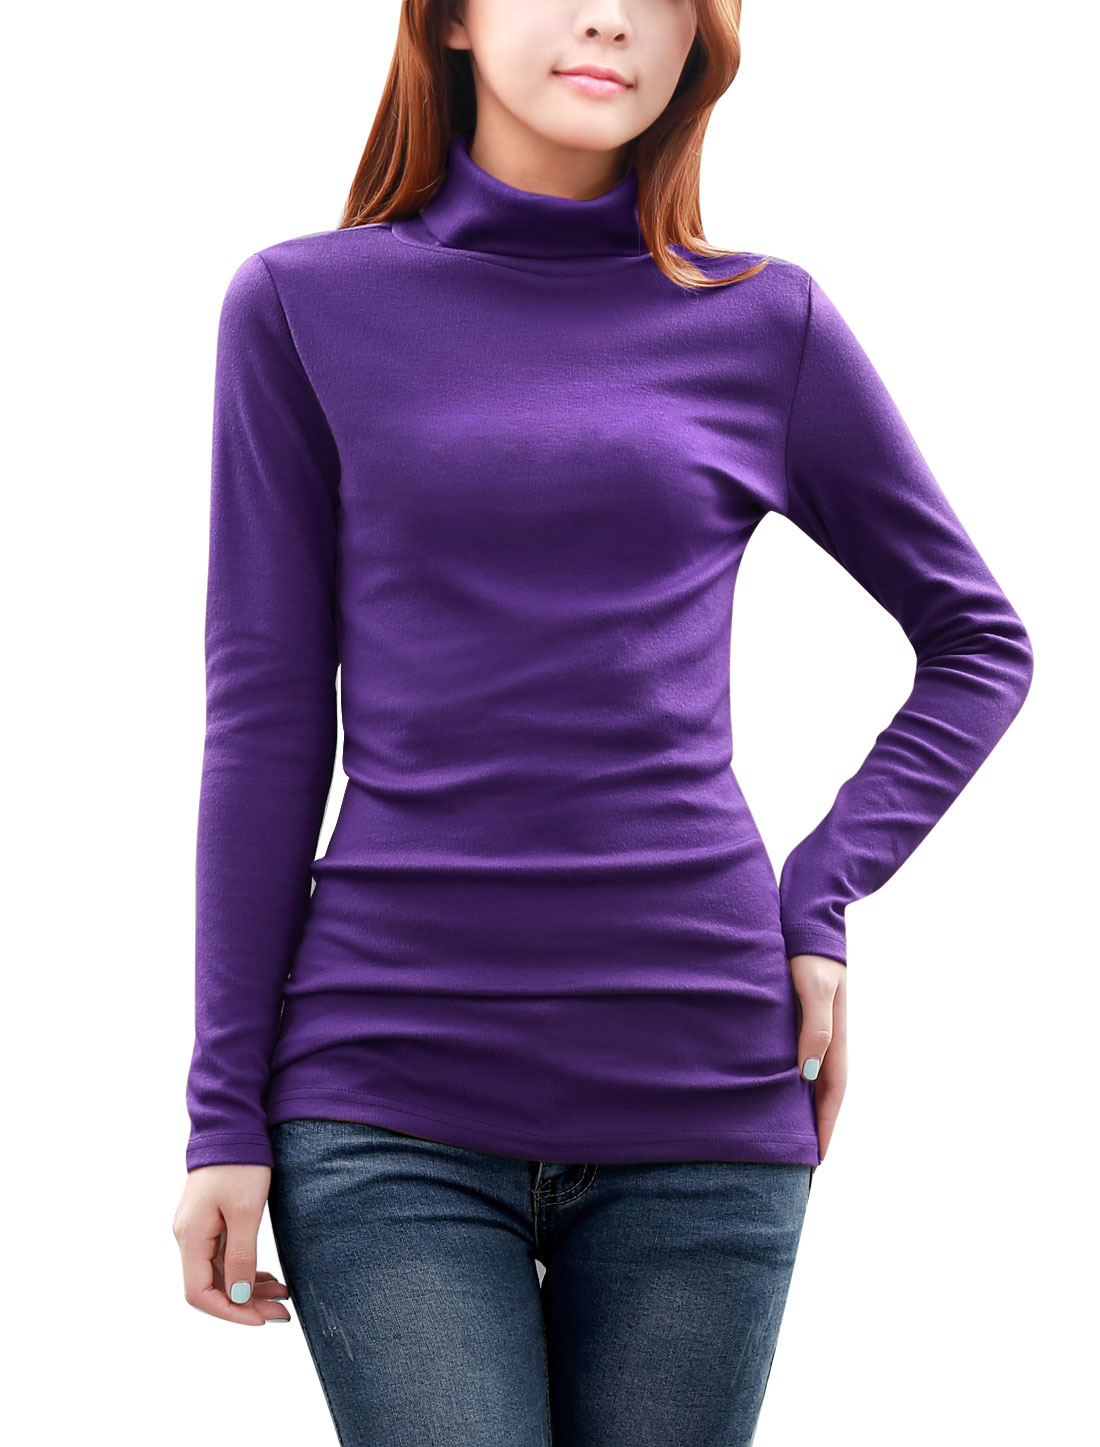 Ladies Sheathy Soft Long Sleeves Turtle Neck Autumn Blouse Purple L